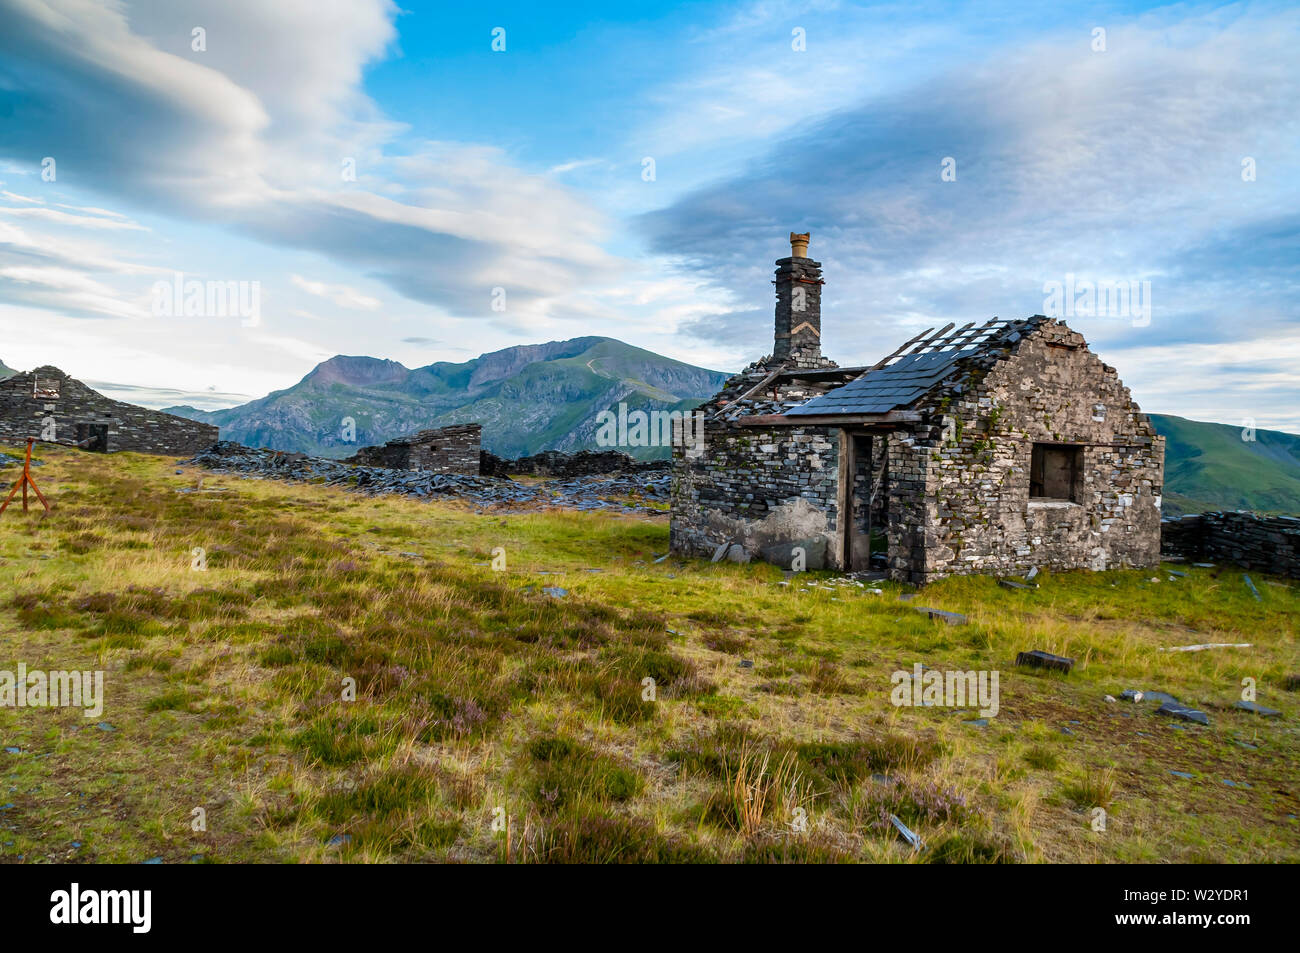 A ruined cottage on a high-level bench at Dinorwic Quarry, with the peak of Snowdon in the background. Stock Photo